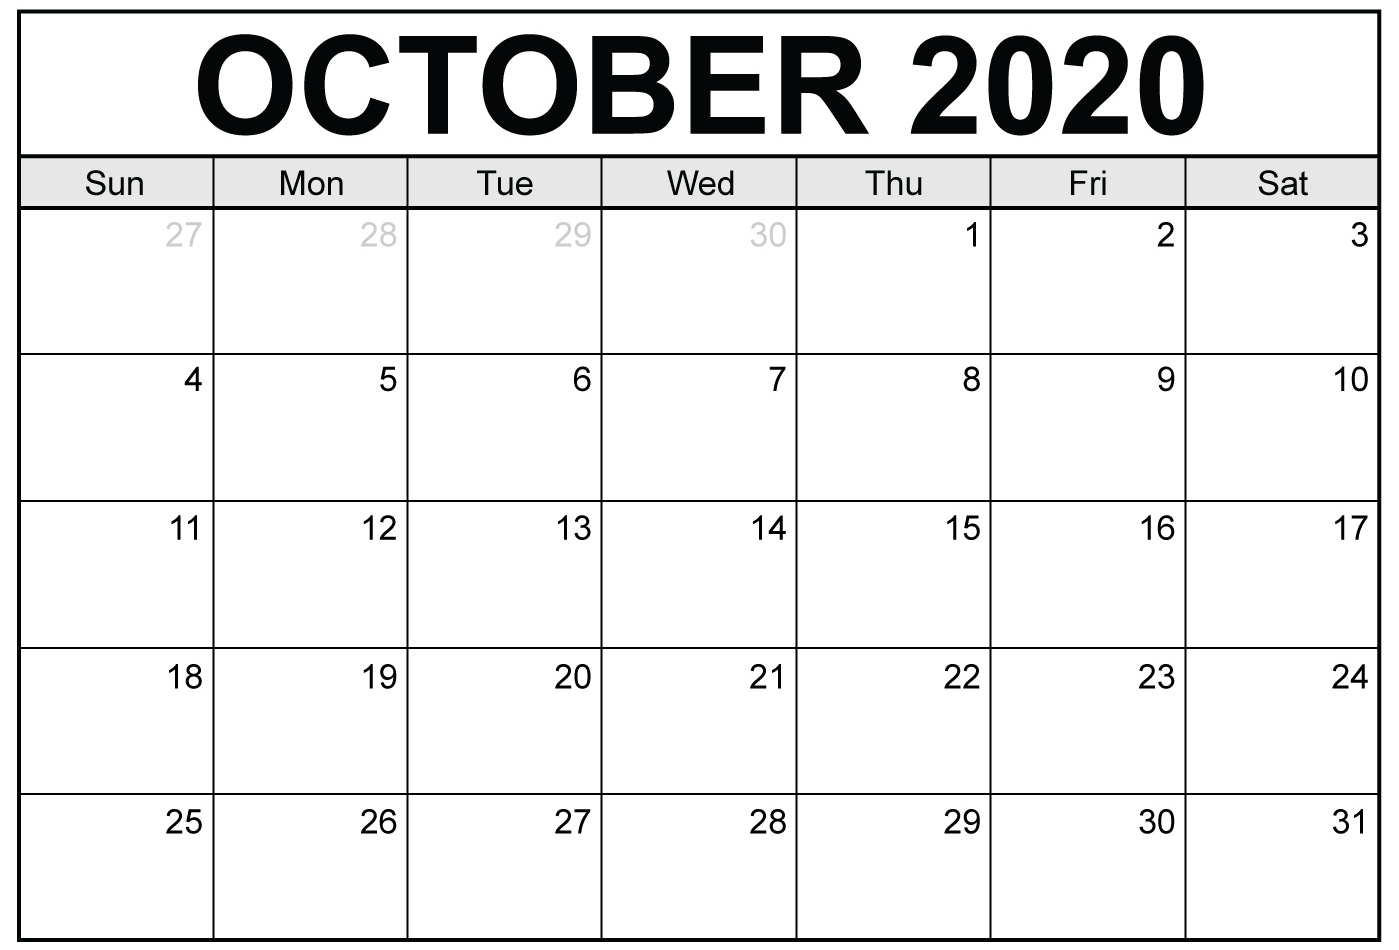 Monthly Calendar October 2020 Printable Template - Set Your